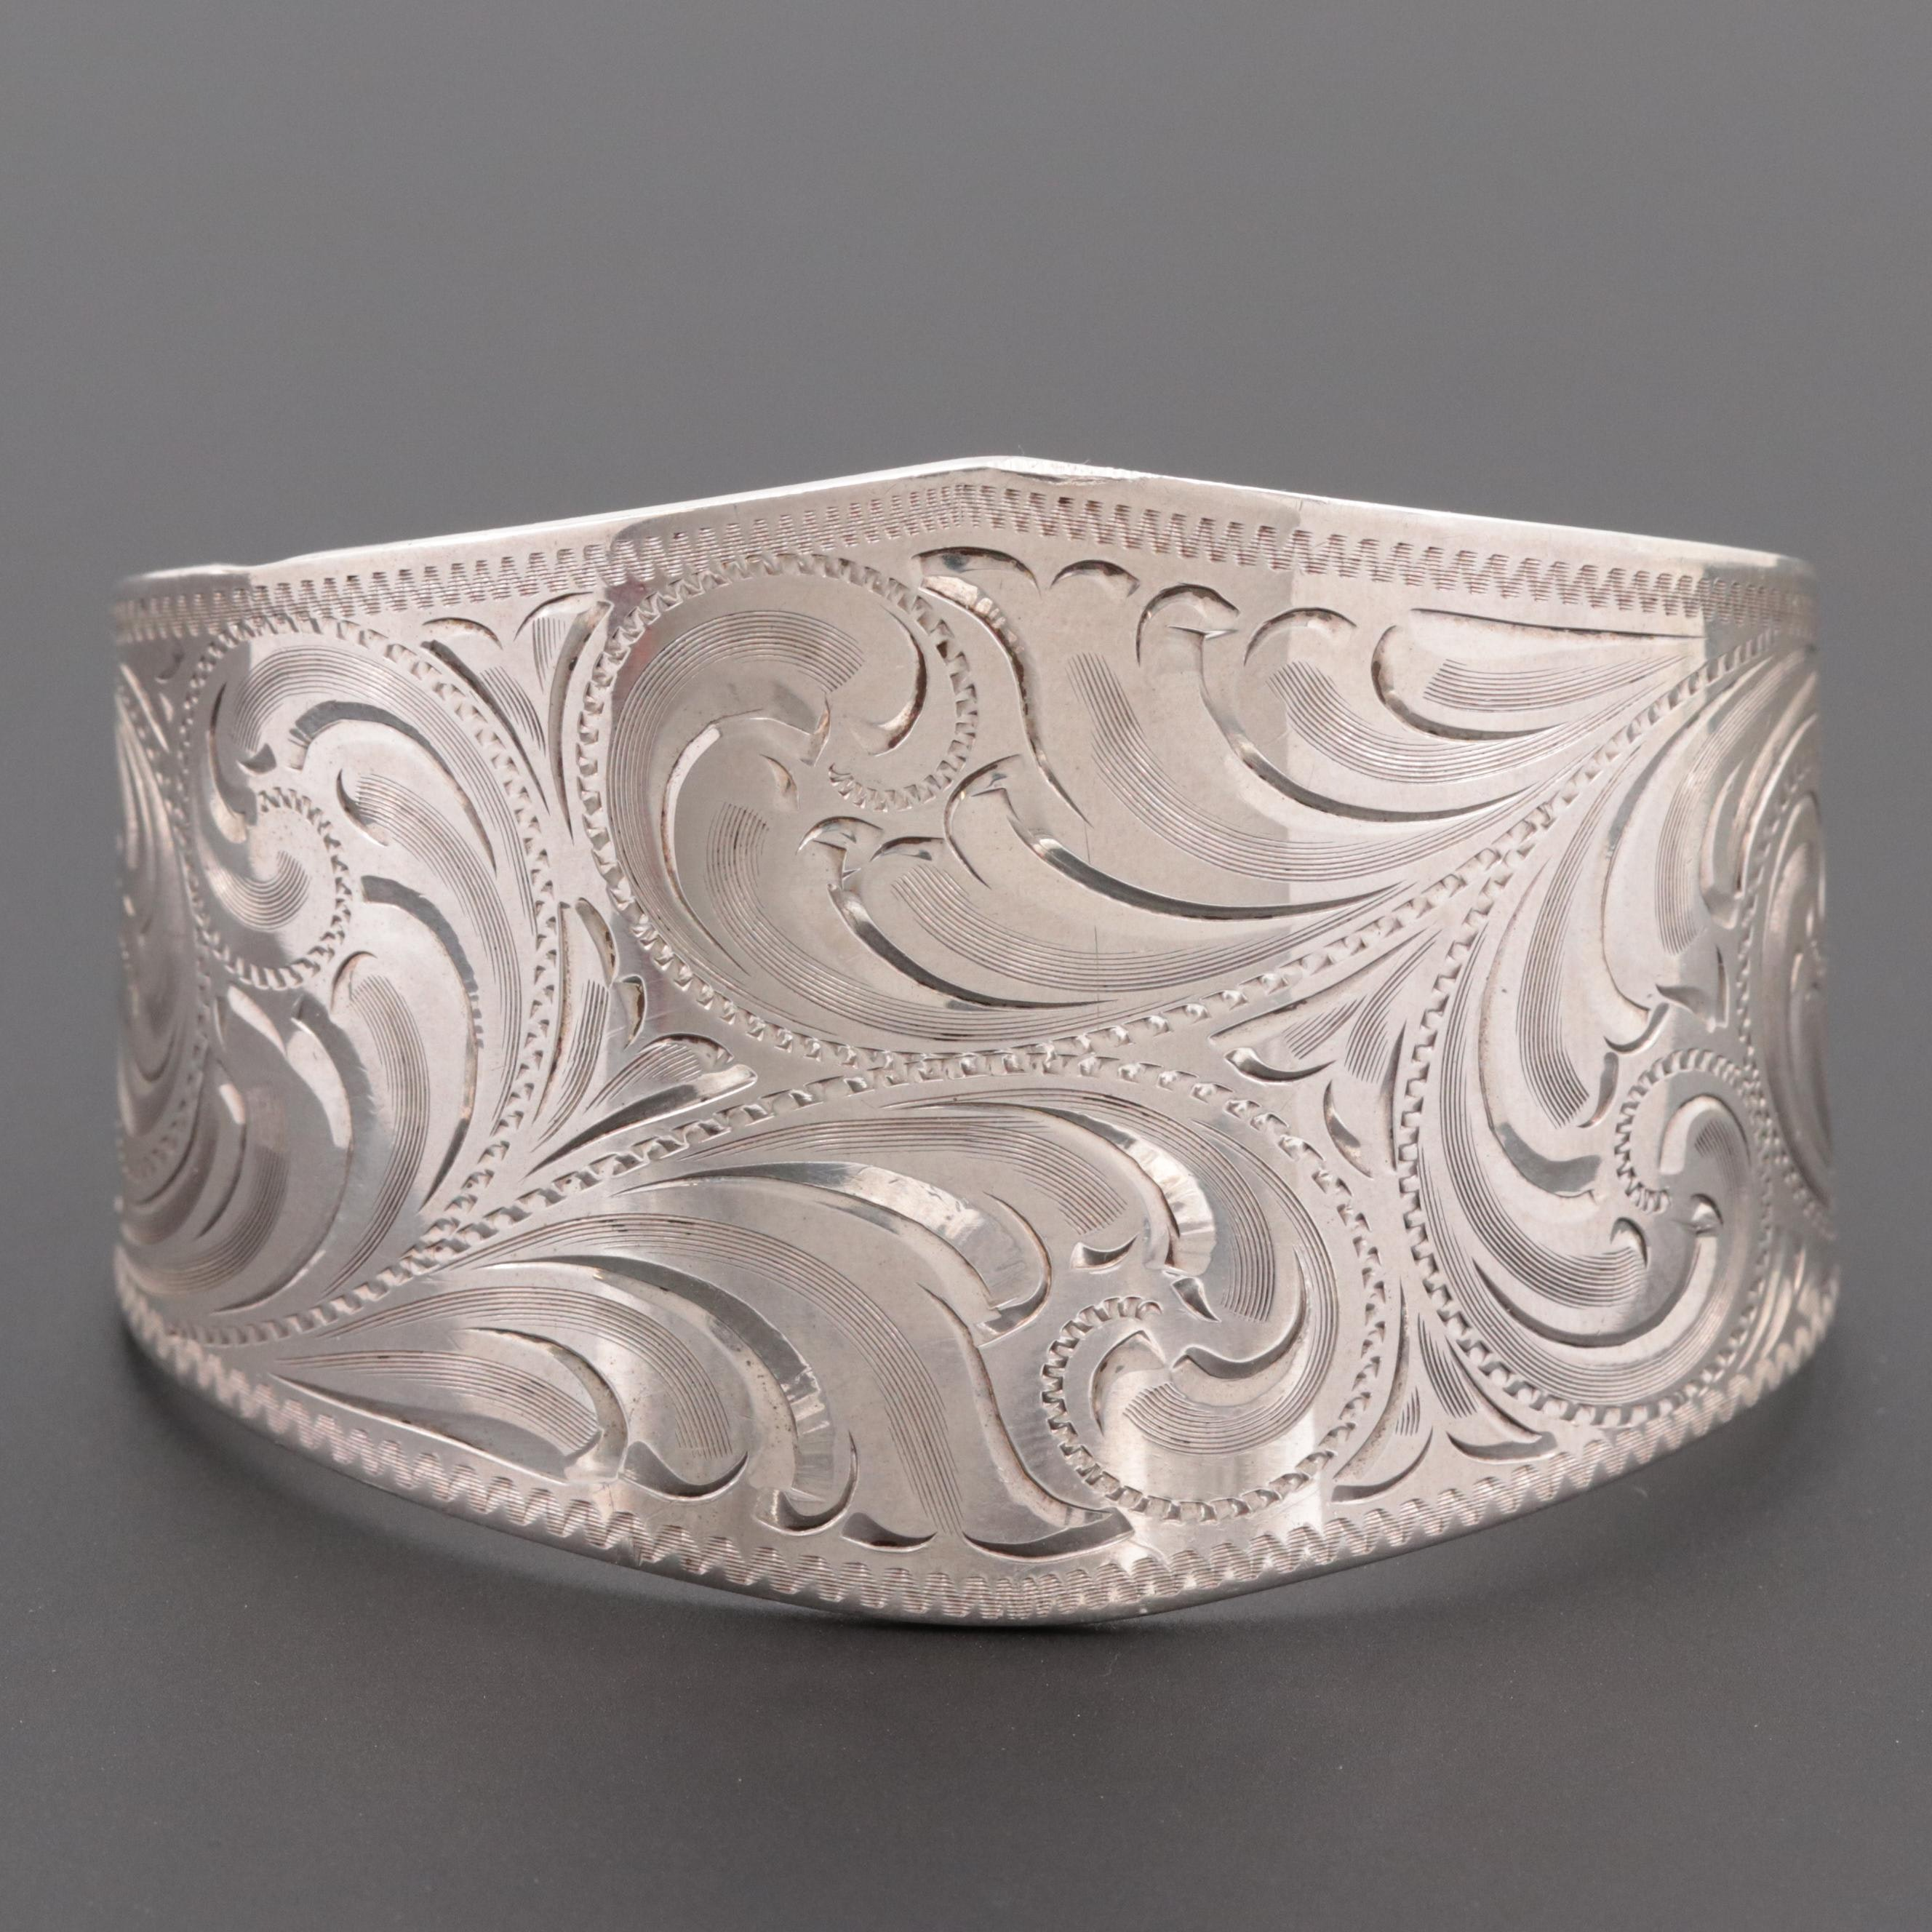 Smith Enterprises Sterling Silver Cuff Bracelet with Engraved Scrollwork